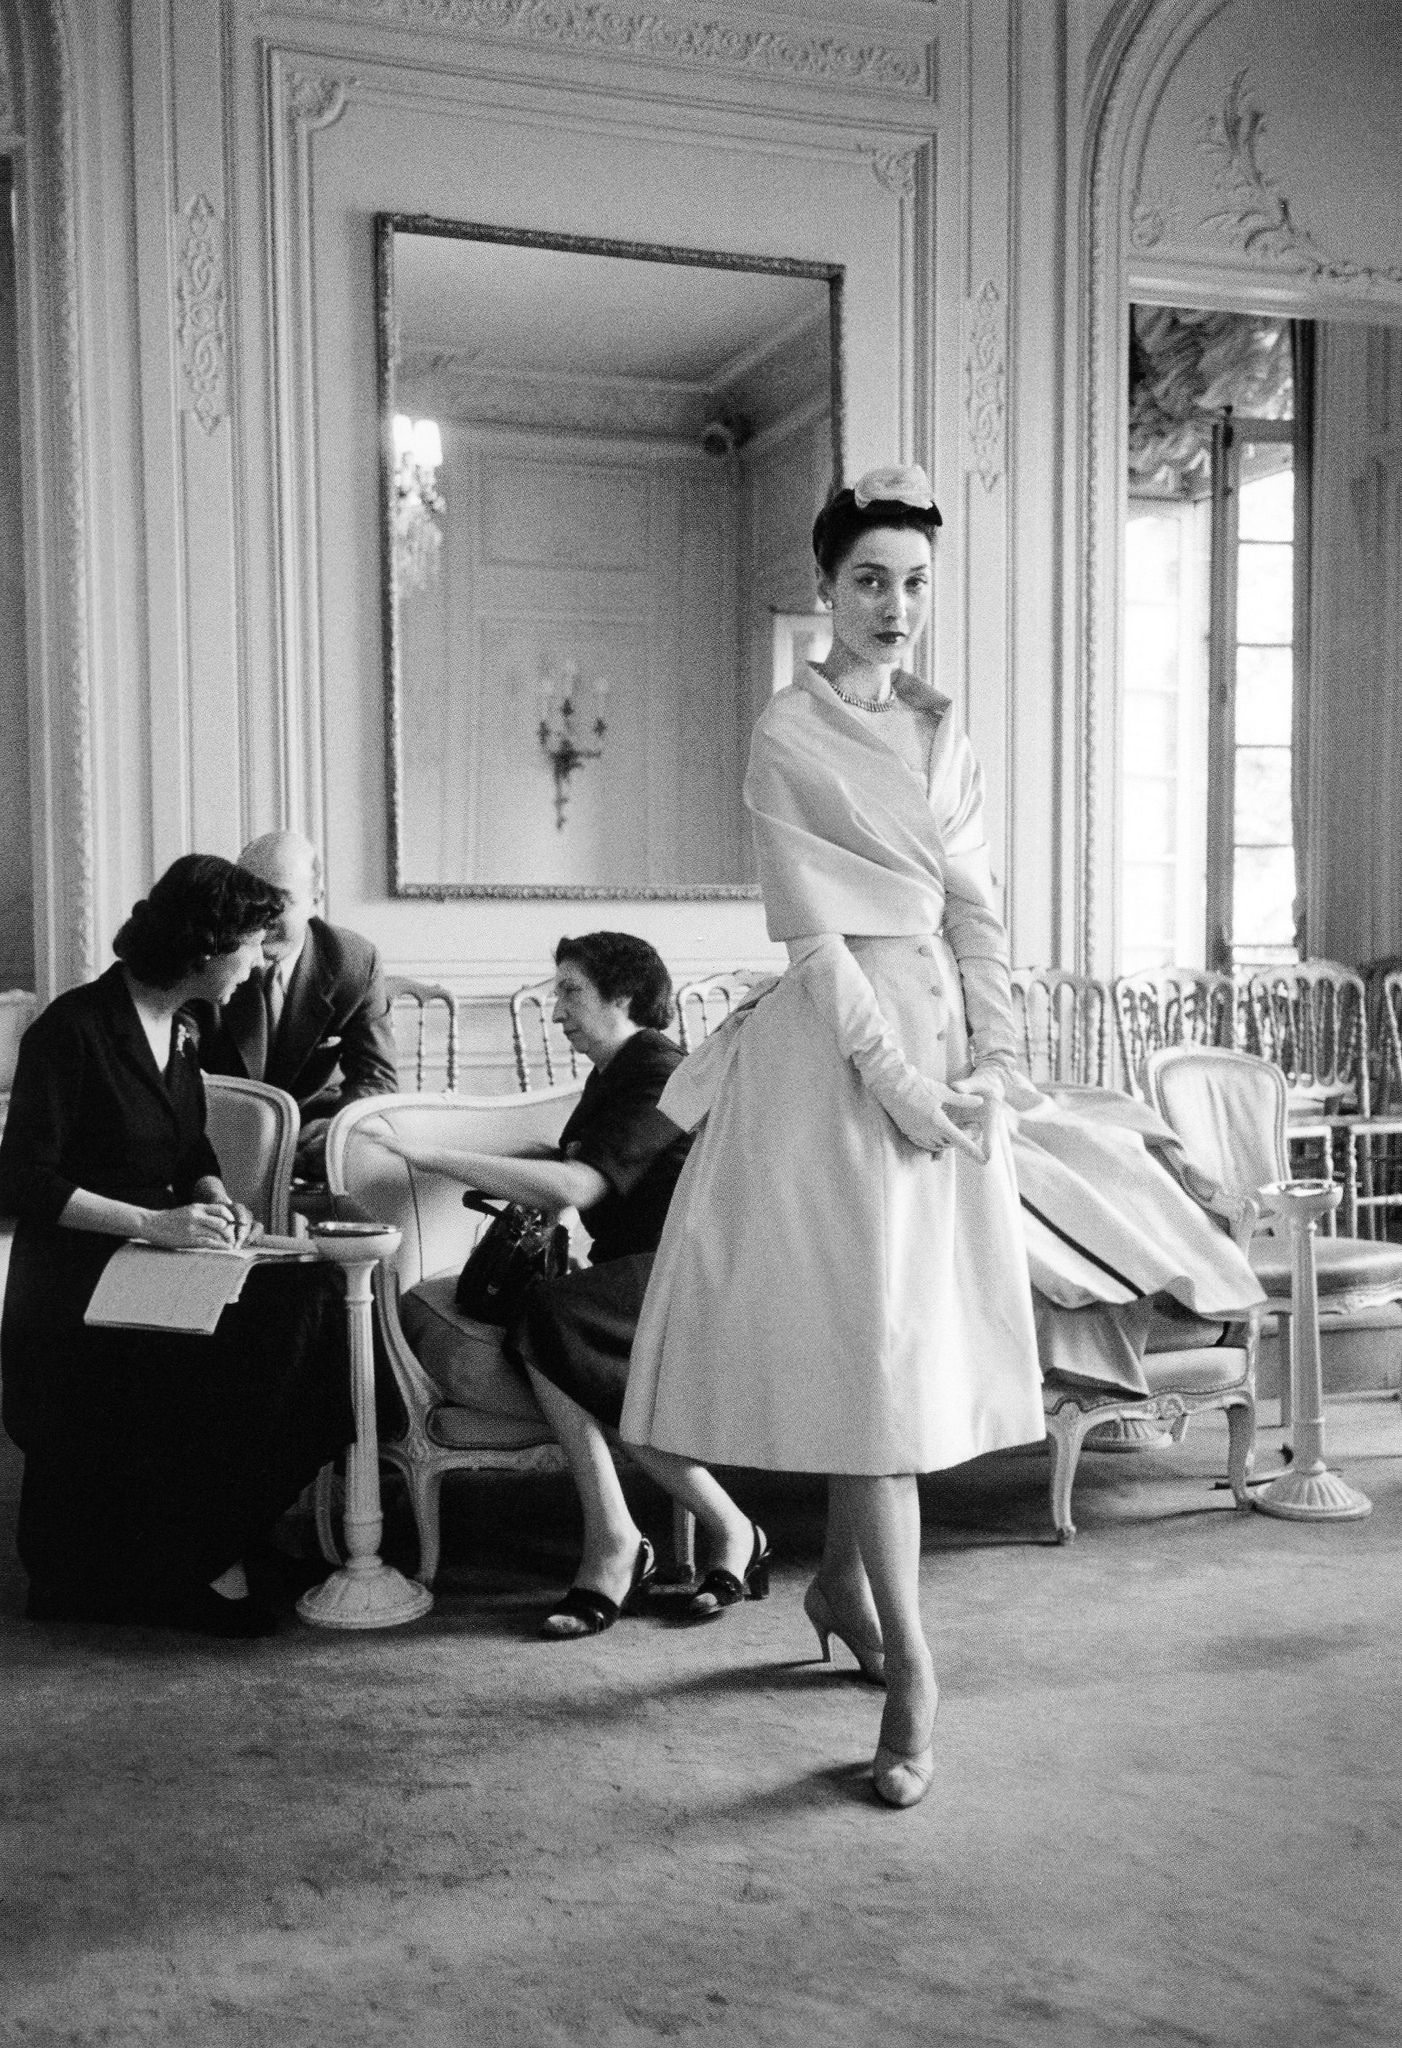 Renée is wearing Dior's 'Mireille' dress from the Autumn/Winter 1953 collection, of the Vivante line, photo by Mark Shaw, salon at Maison Dior, Paris, 1953